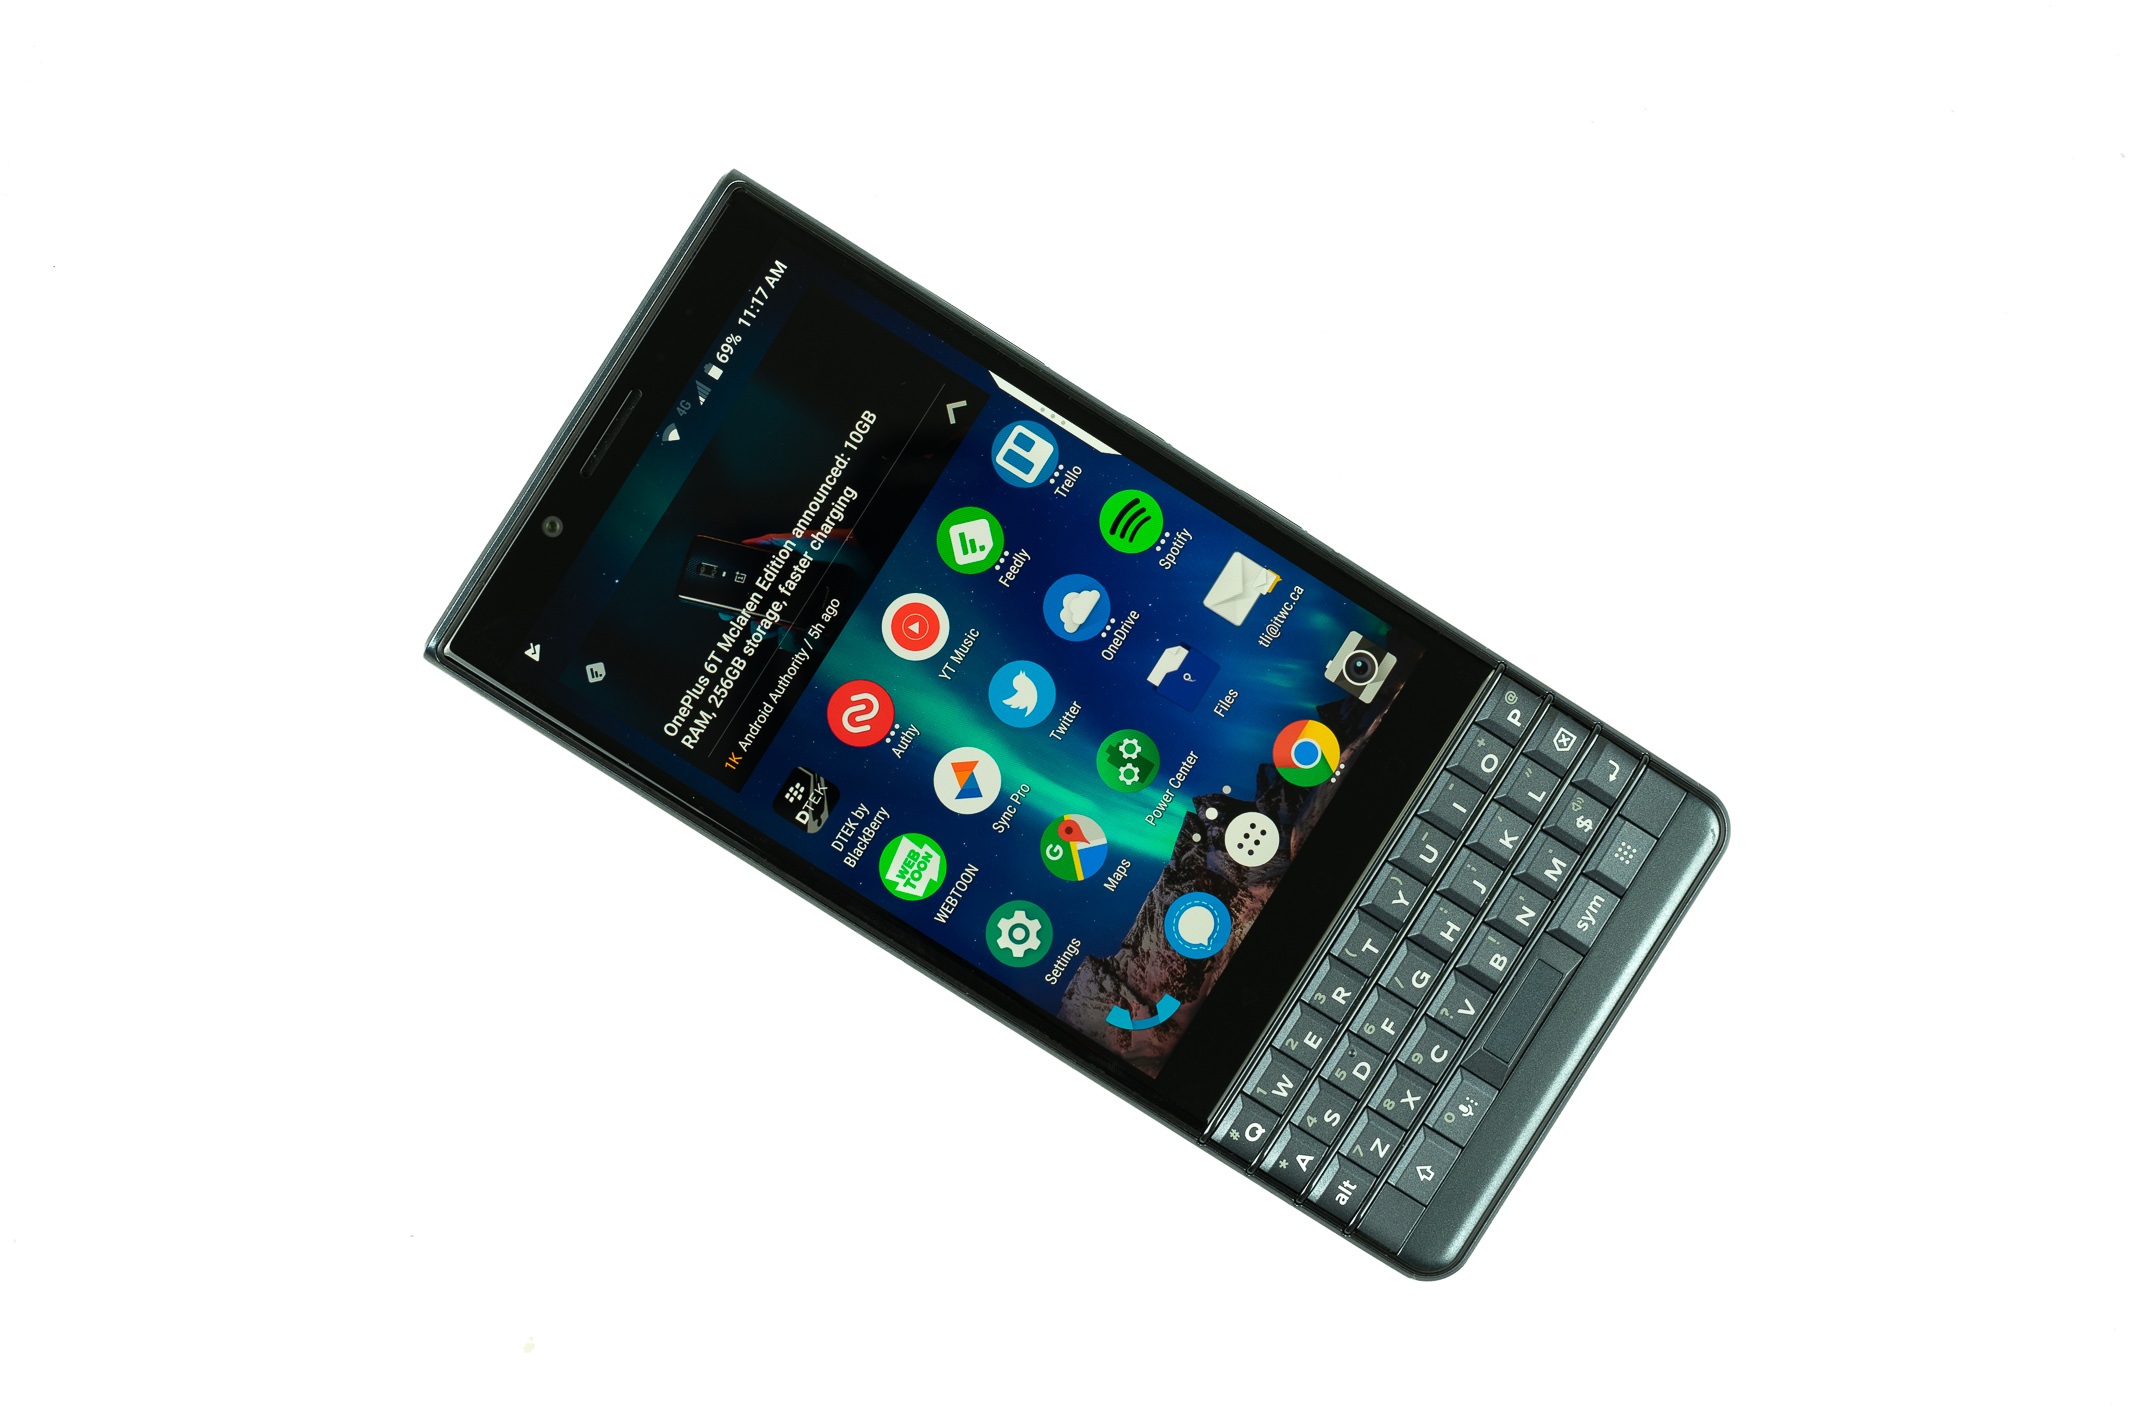 Blackberry Key2 Le Review Privacy And Security For Cheap Ish It World Canada News